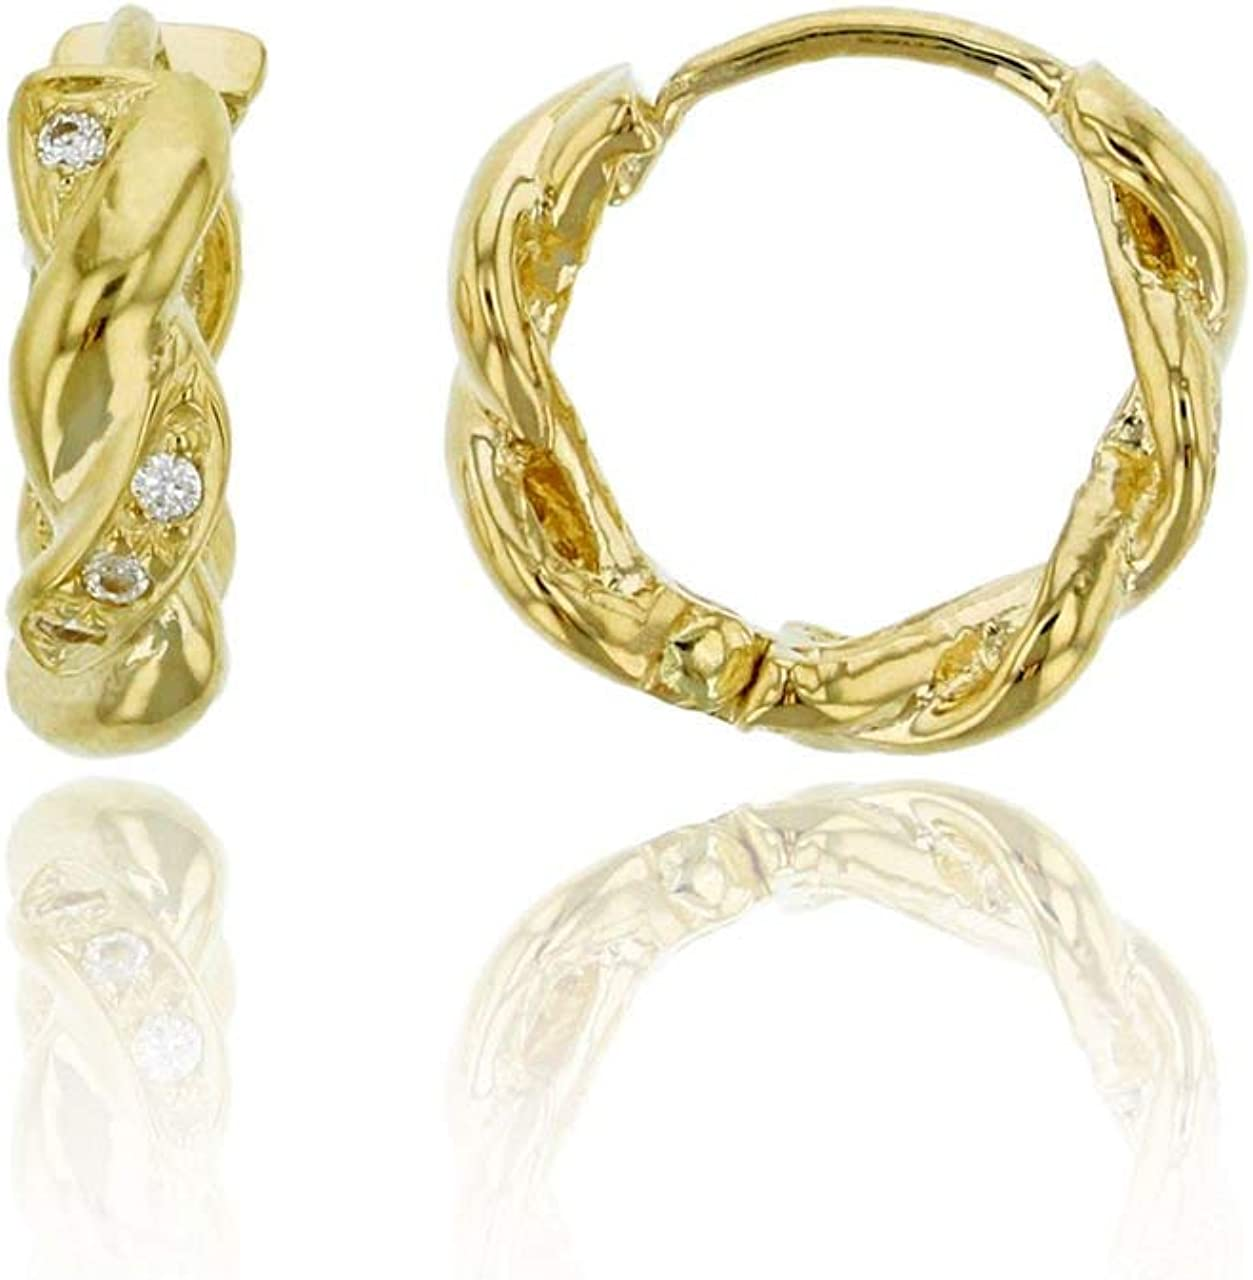 14K Yellow Solid Gold Huggie With AAA Cubic Zirconia Huggie Earrings   Different Styles: Twisted, Infinity, Baguette and Princess Cut Huggie Earrings   Solid Gold Huggie Earrings for Women and Girls